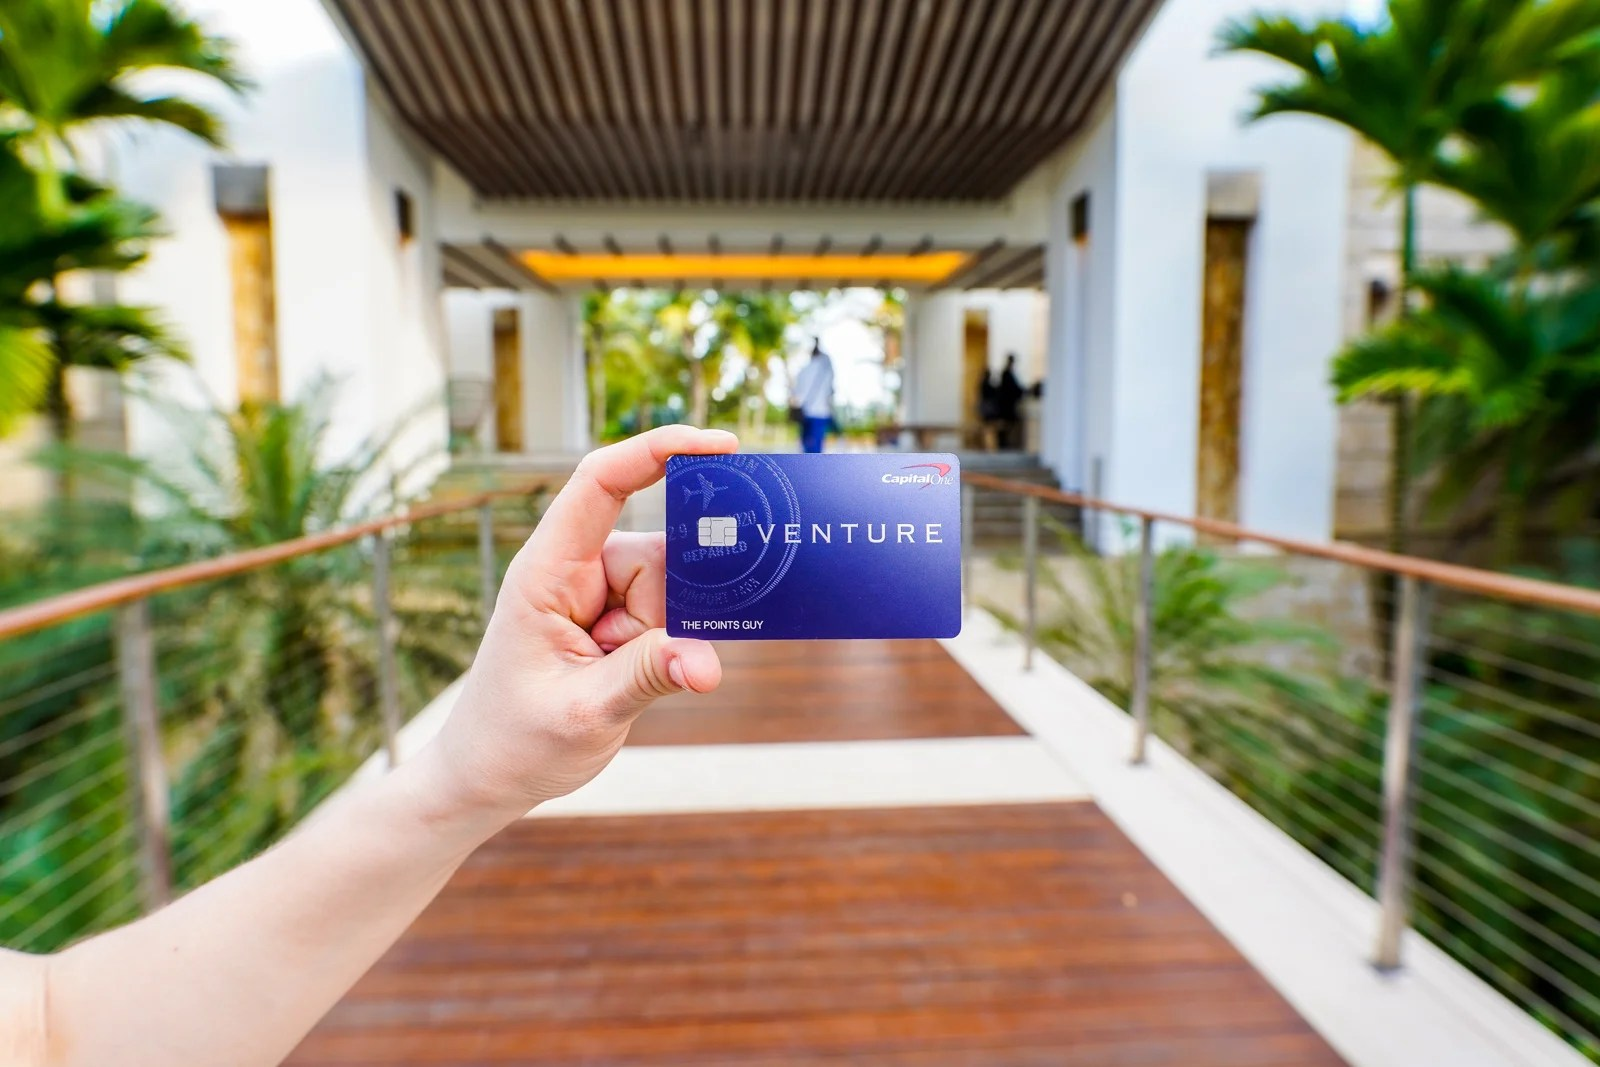 The Top 10 Visa Credit Cards - The Points Guy